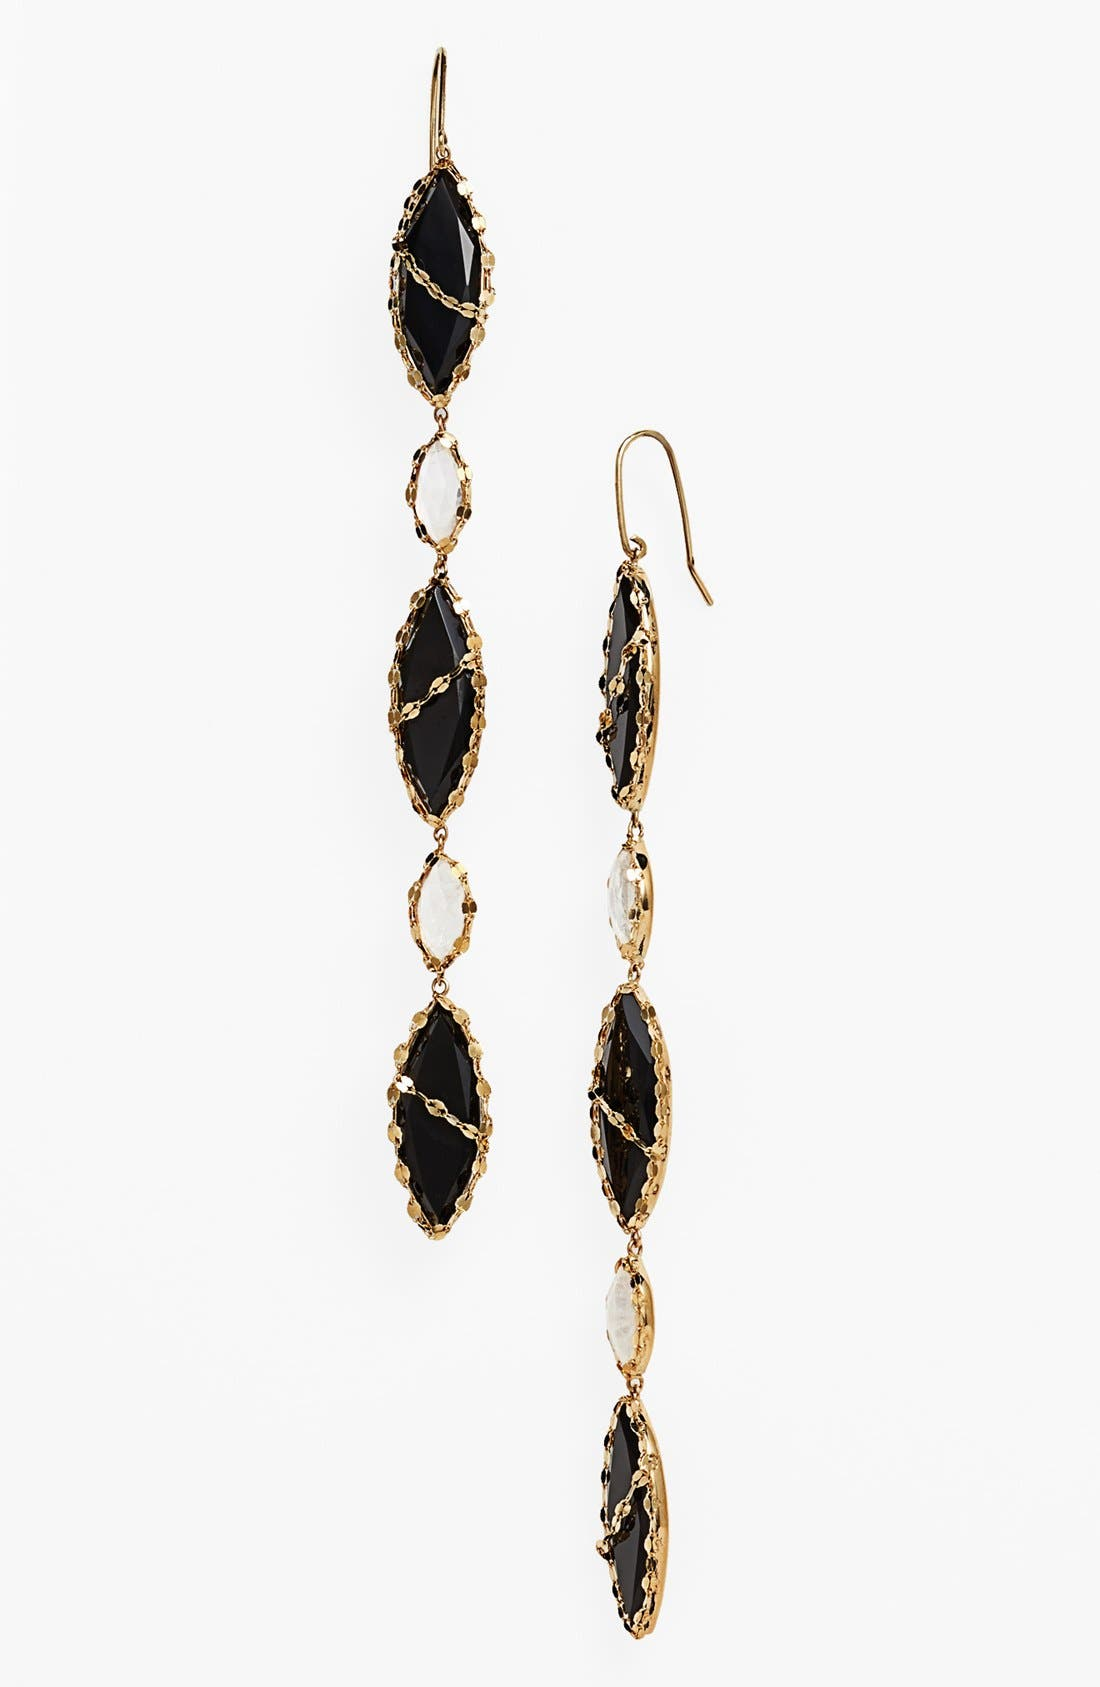 Main Image - Lana Jewelry 'Spellbound - Remix' Linear Earrings